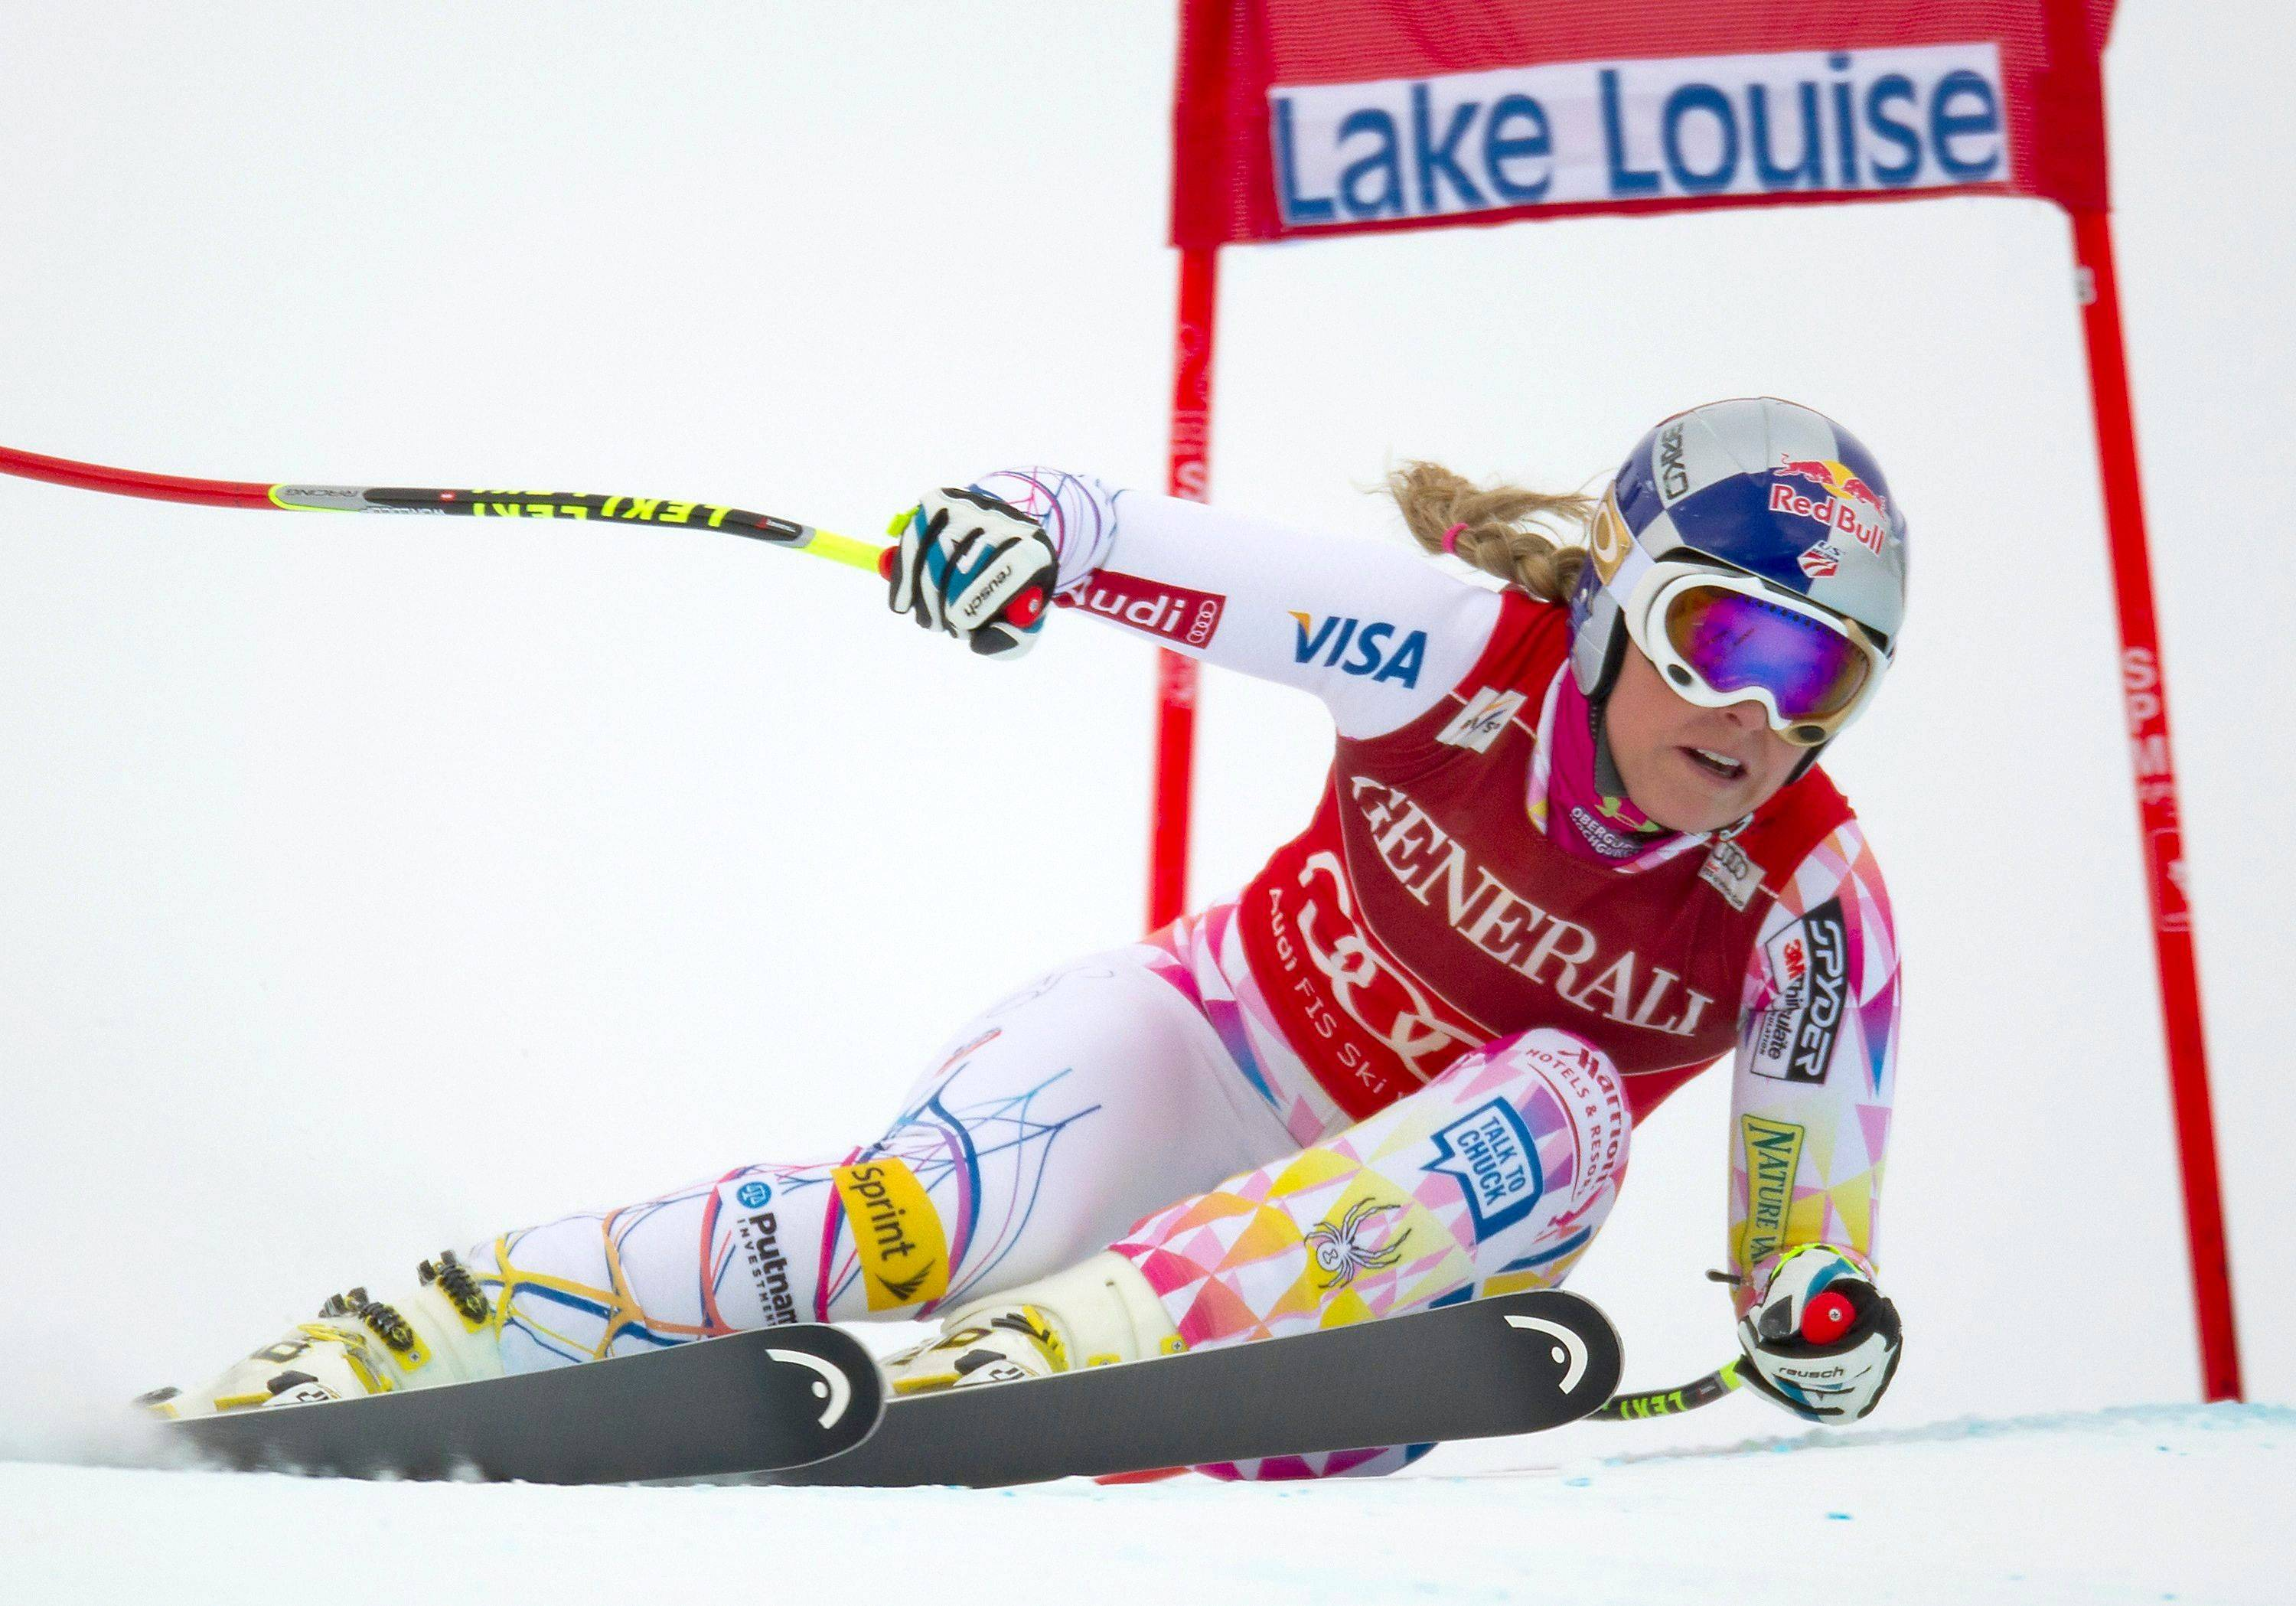 Lindsey Vonn of the United States blasts down the course on her way to winning the women's World Cup downhill ski race in Lake Louise, Alberta, on Saturday.